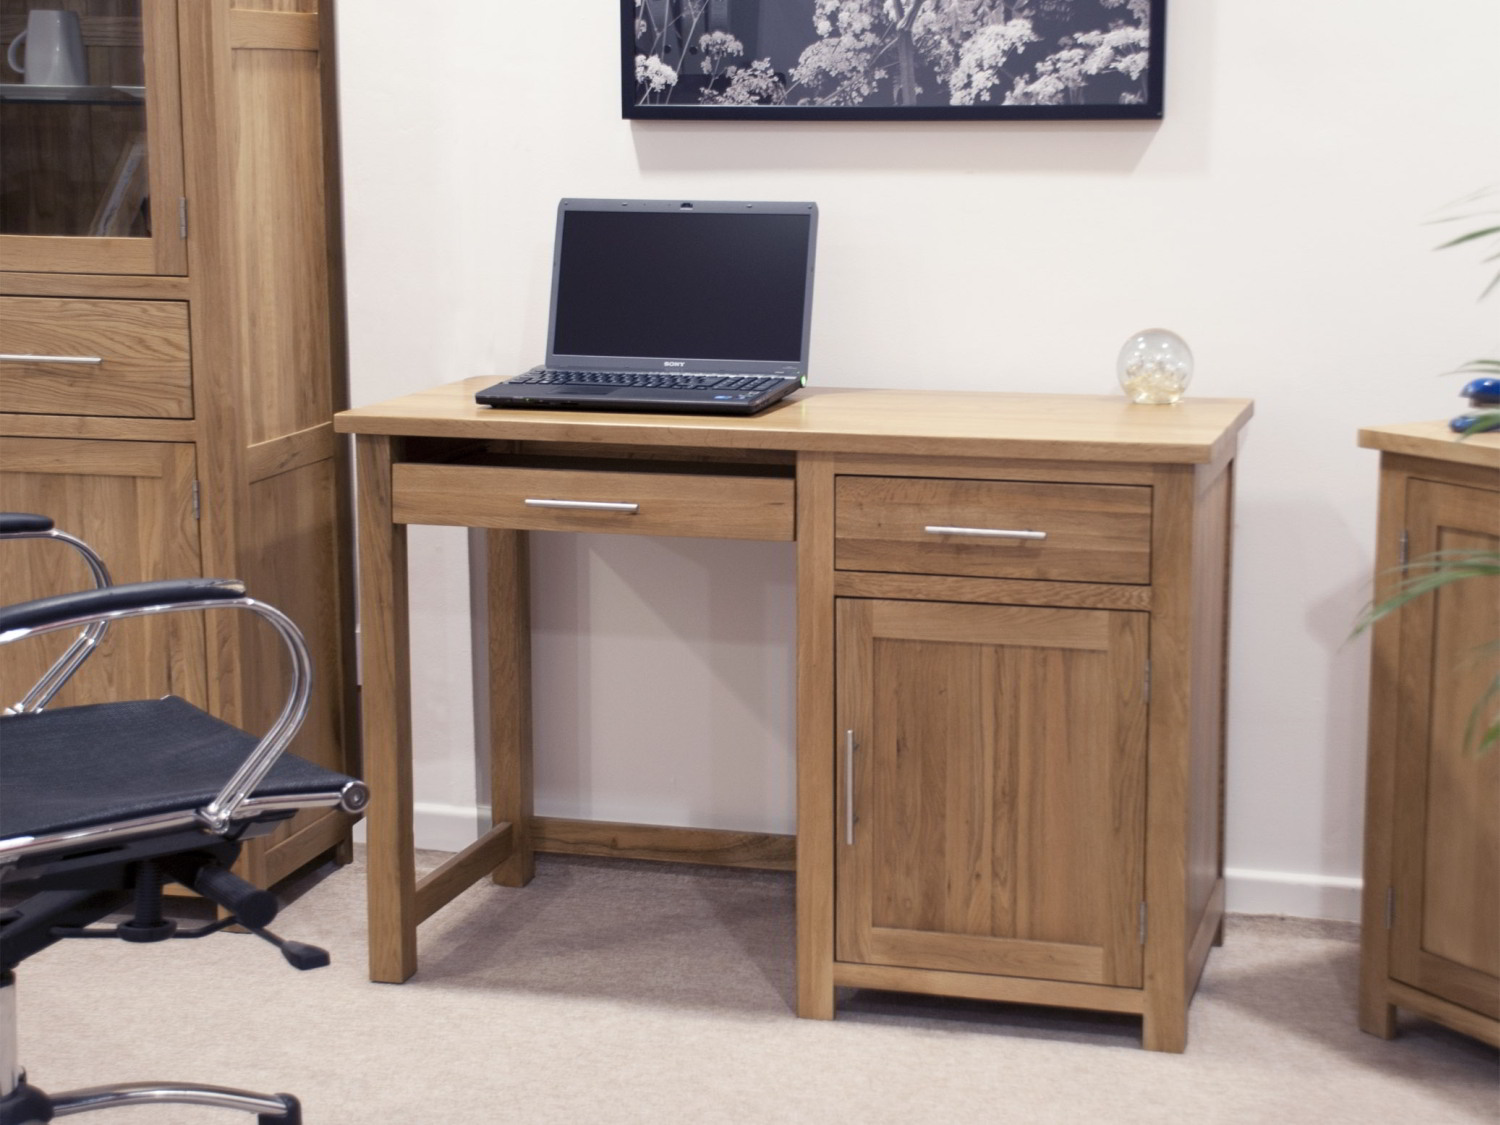 Eton Solid Oak Modern Furniture Small